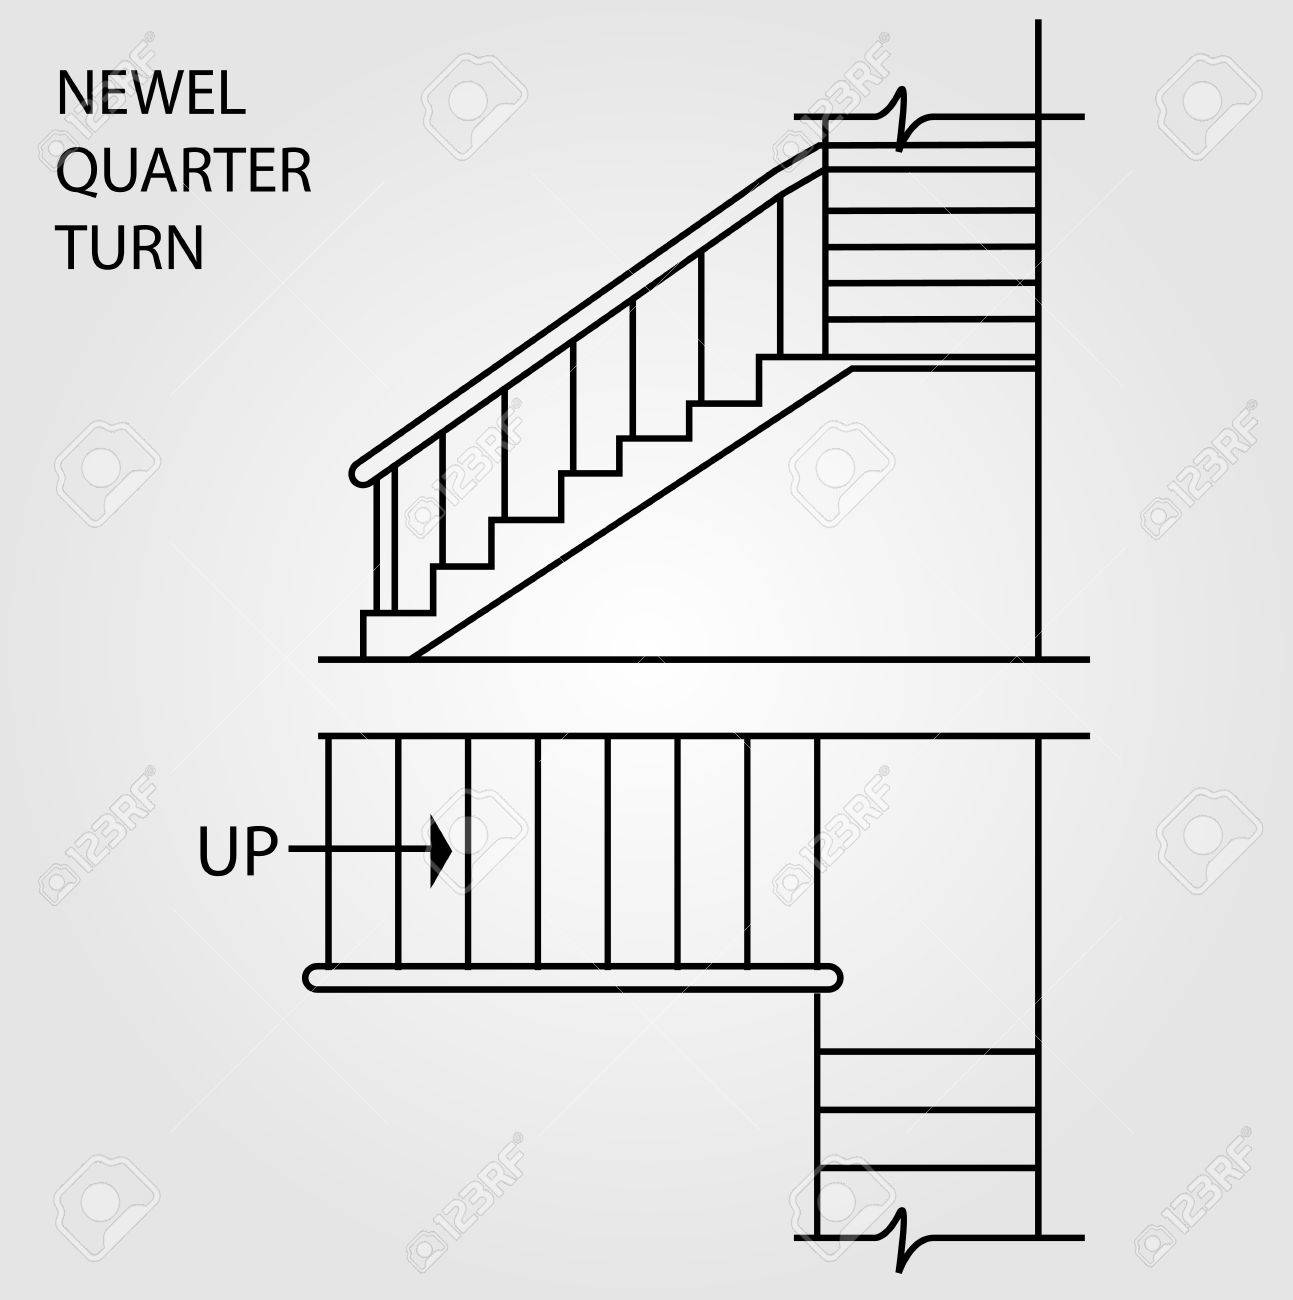 top view and front view of a newel quarter turn staircase royalty rh 123rf com